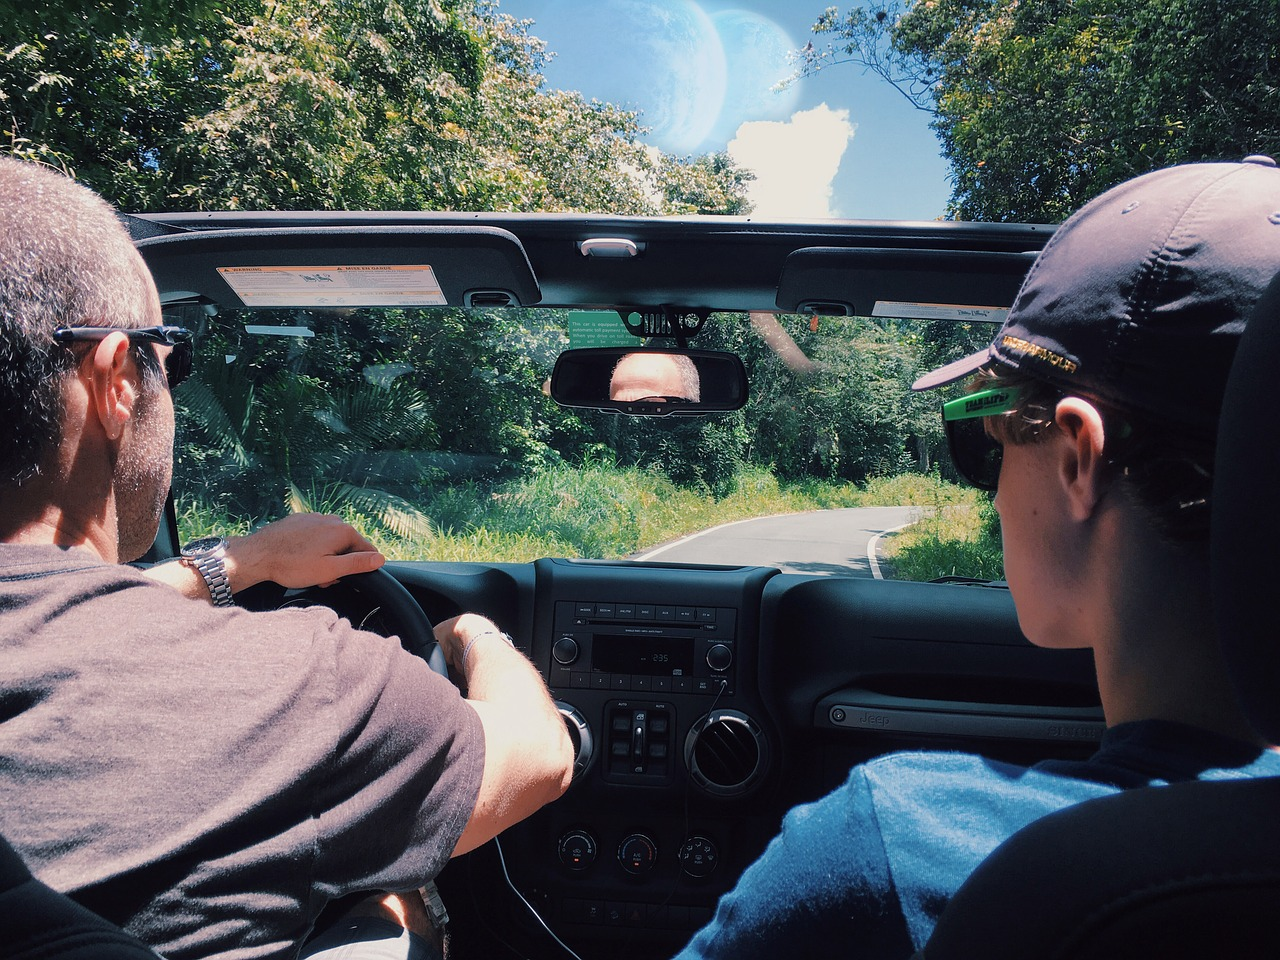 two guys traveling in a car together, dad and son bonding time